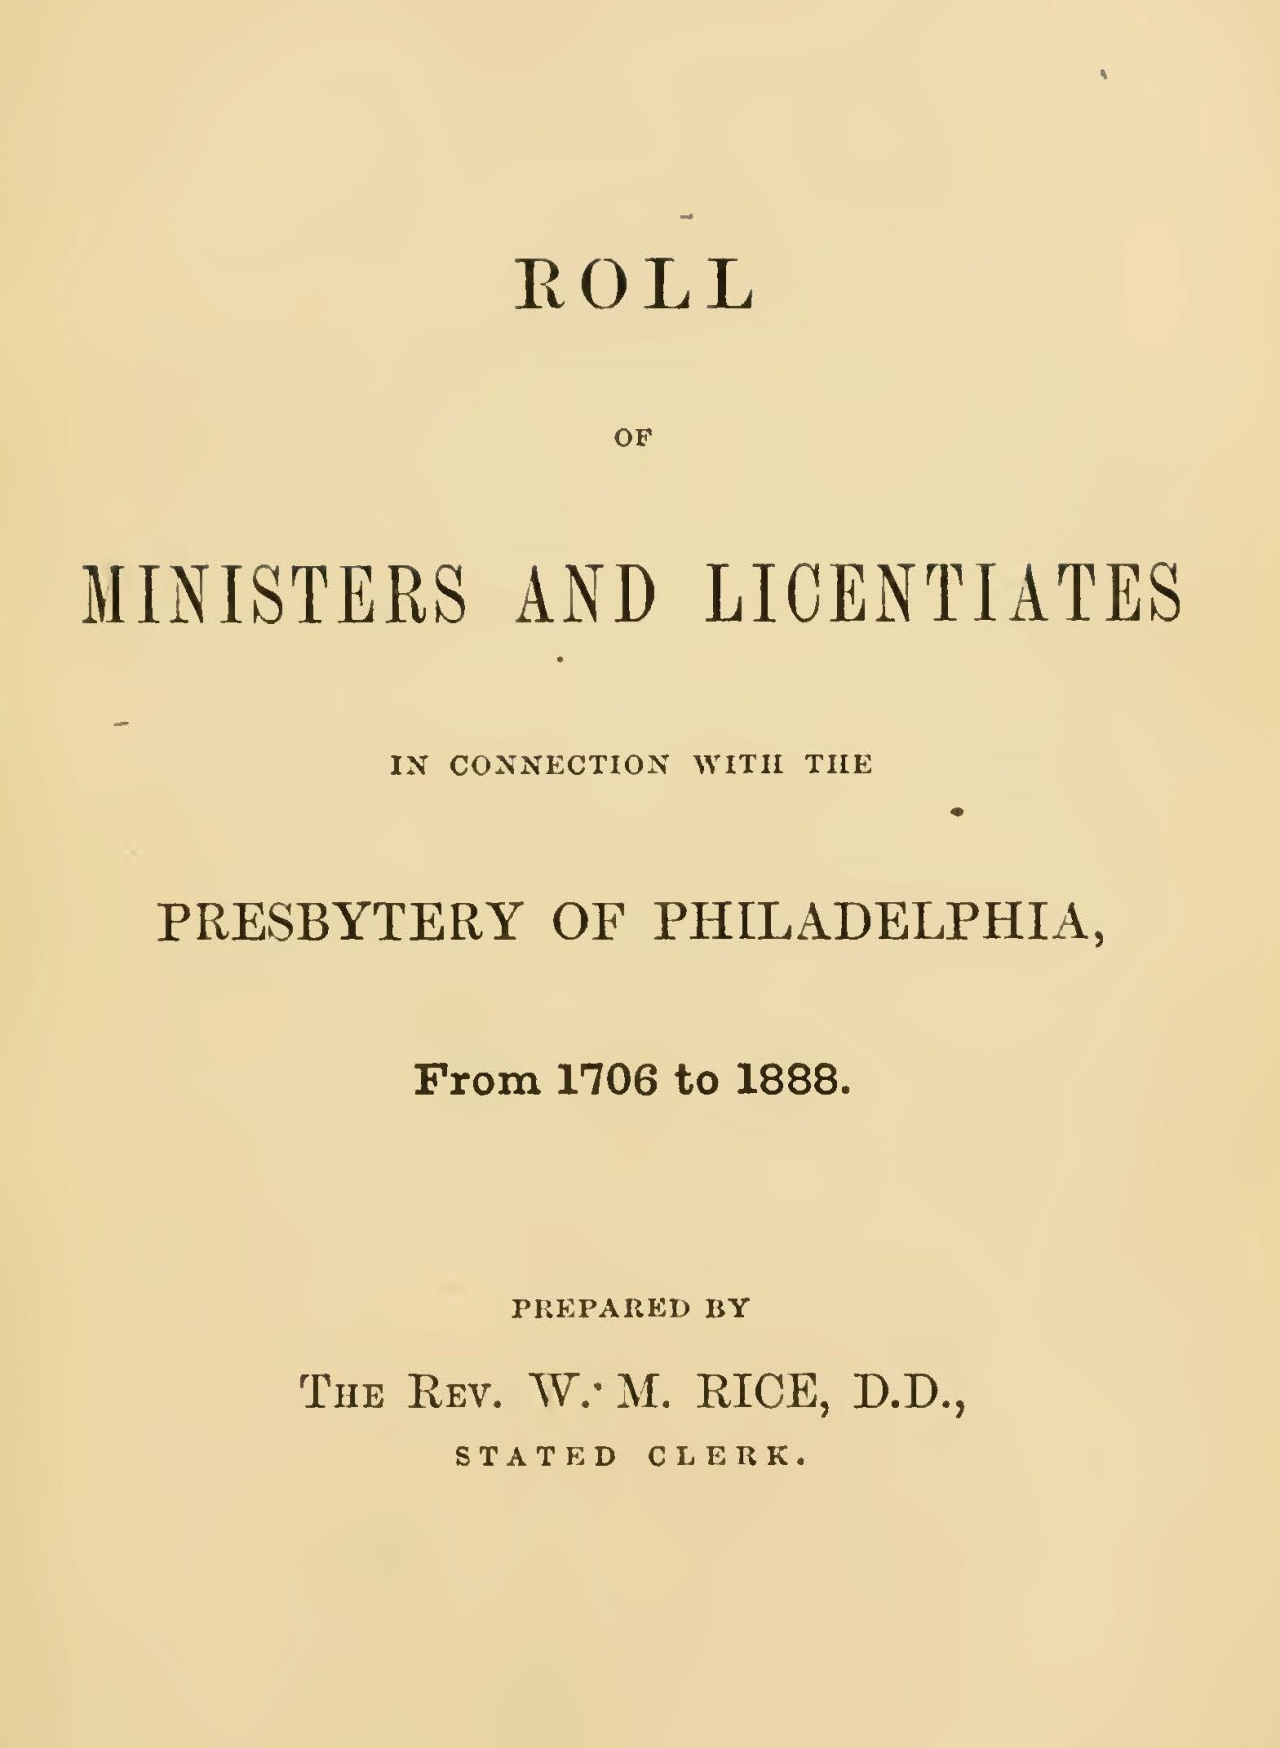 Rice, Willard Martin, Roll of Ministers Title Page.jpg